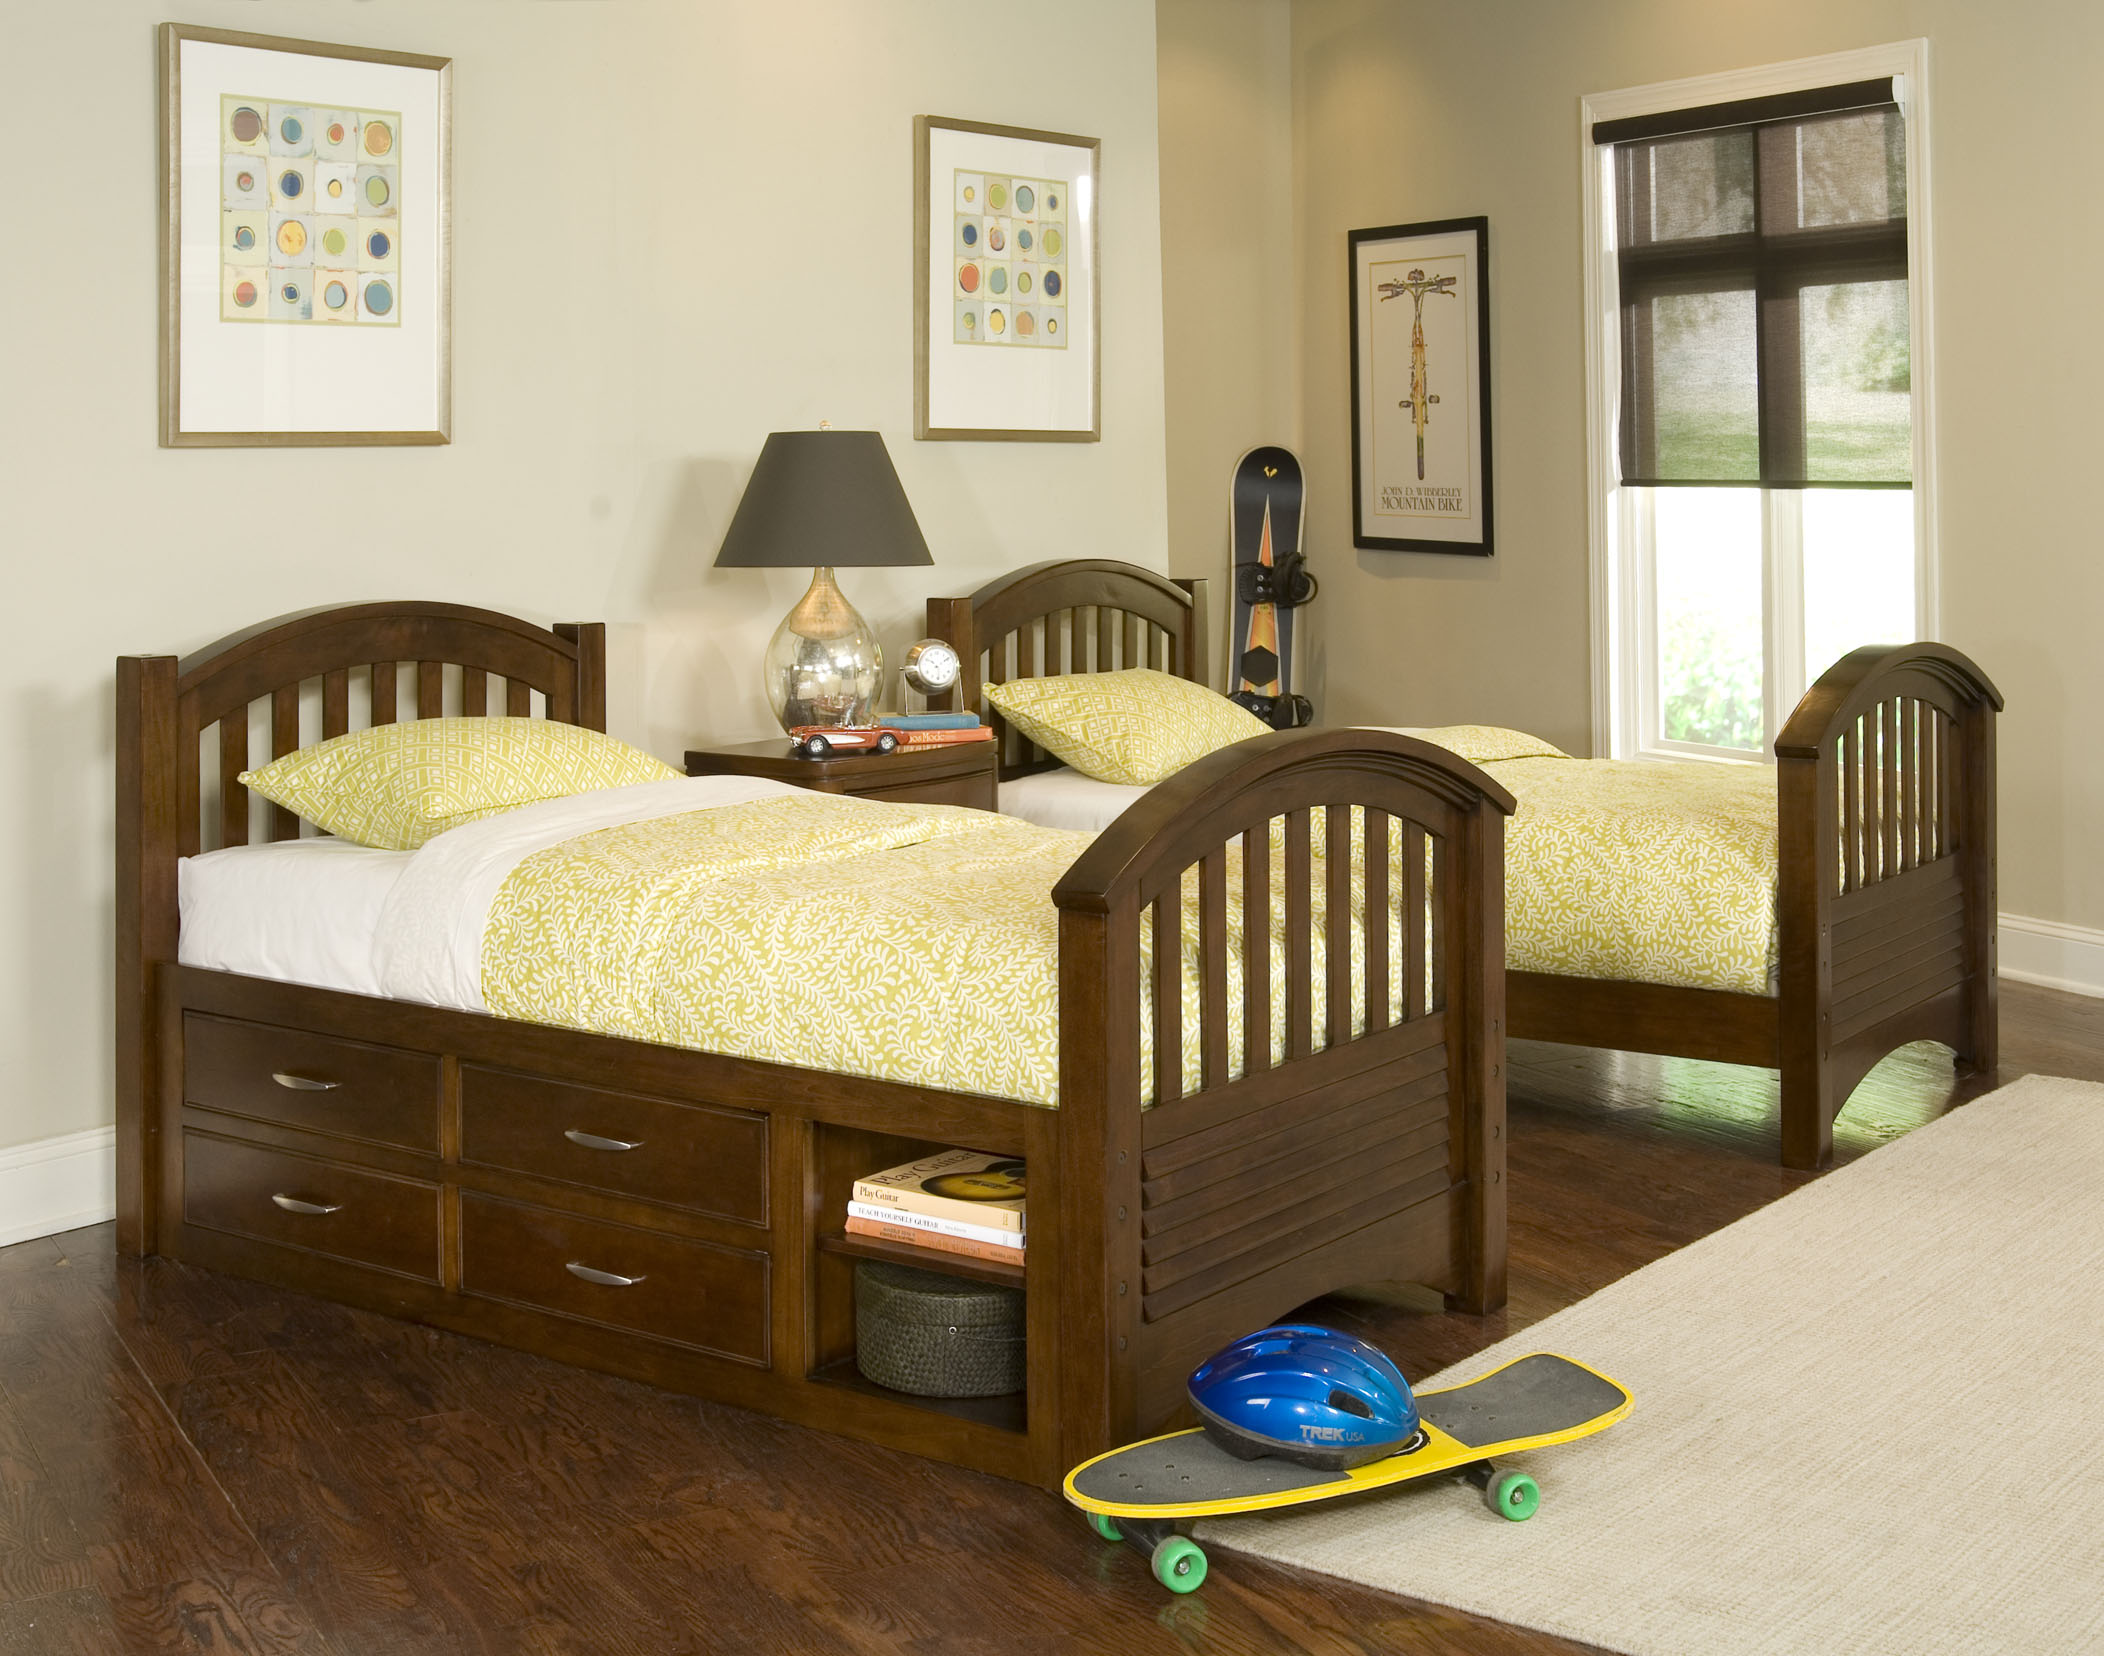 Childrens Beds With Storage Kids Twin Beds With Storage